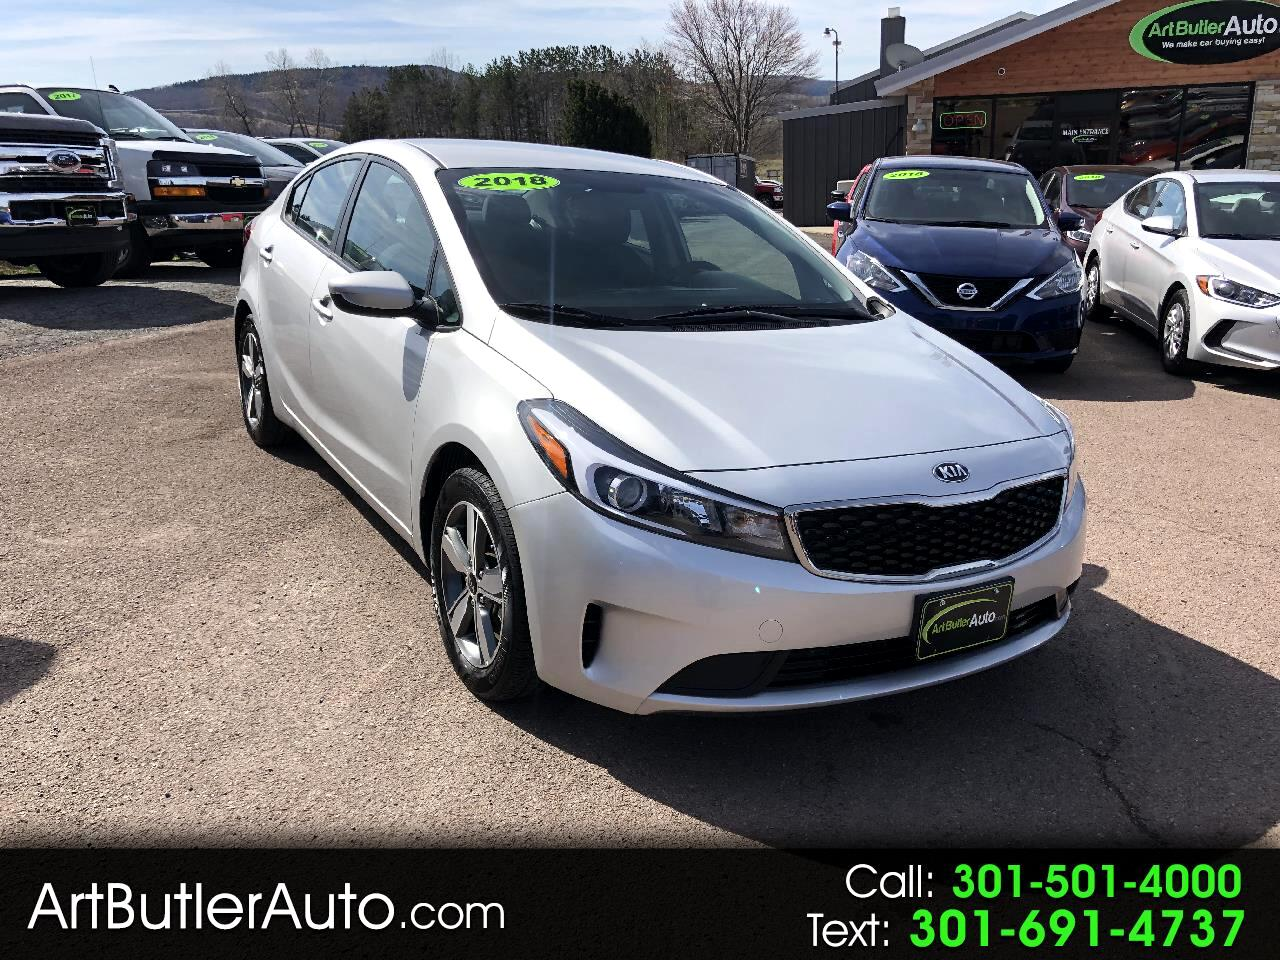 Used 2018 Kia Forte LX Auto for Sale in Accident MD 21520